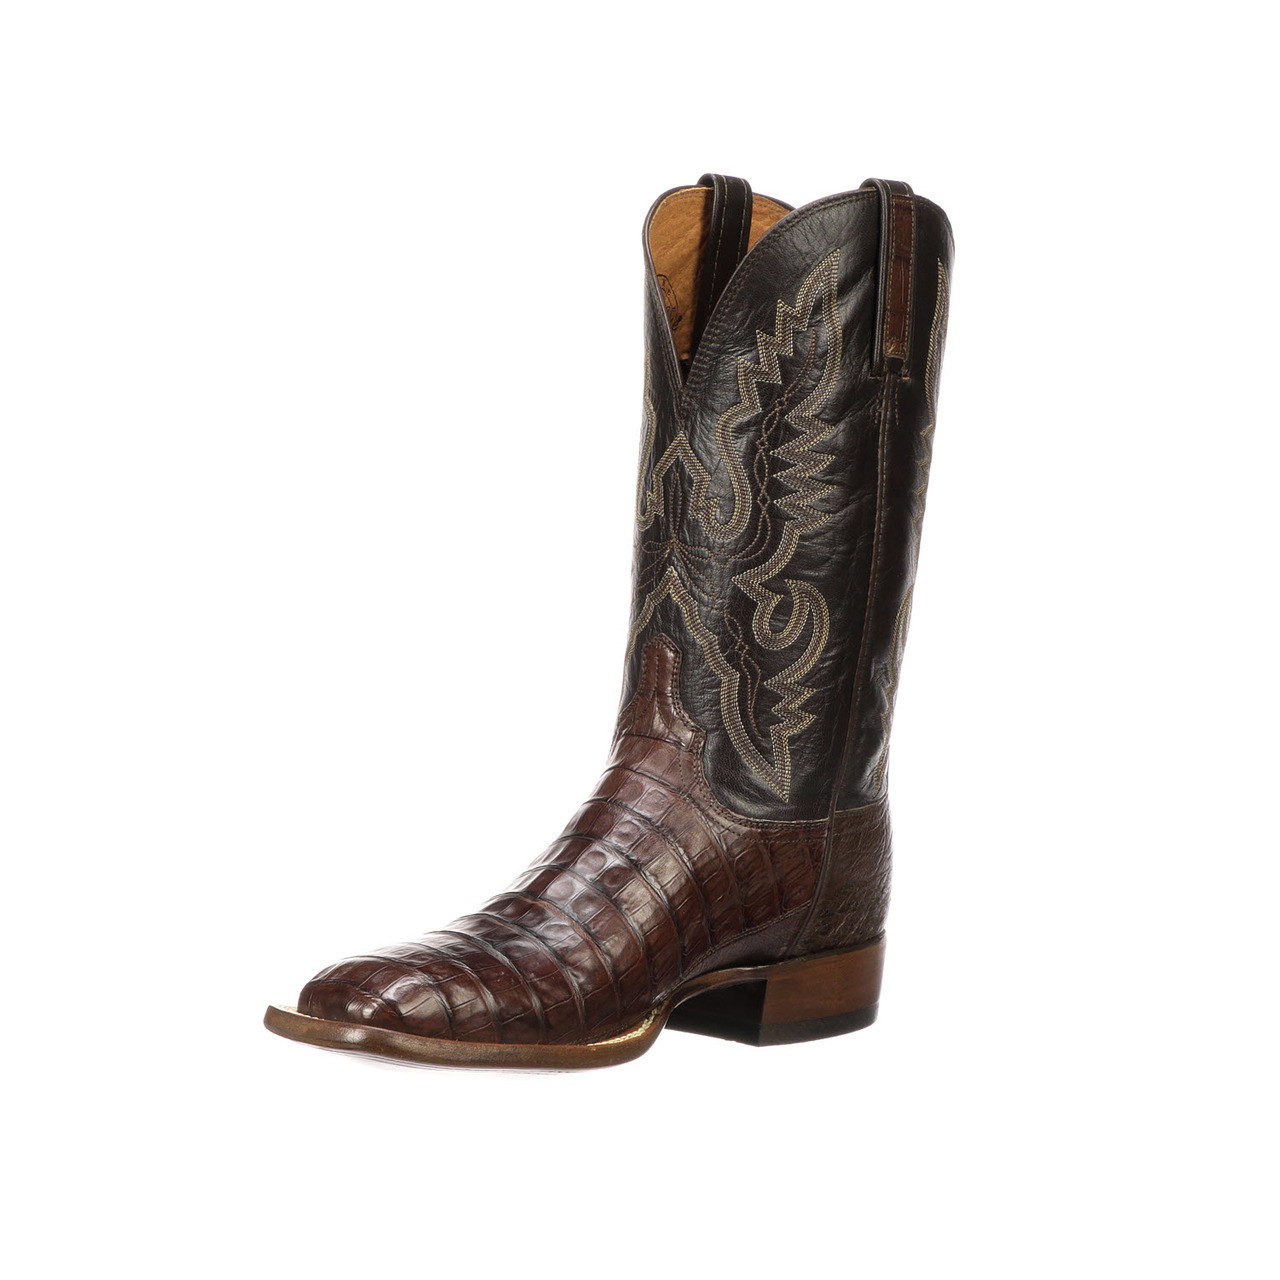 5d2c1887f0e Lucchese Heritage Mens Barrel Brown Ultra Belly Tail Cut Caiman CL1006 Trent